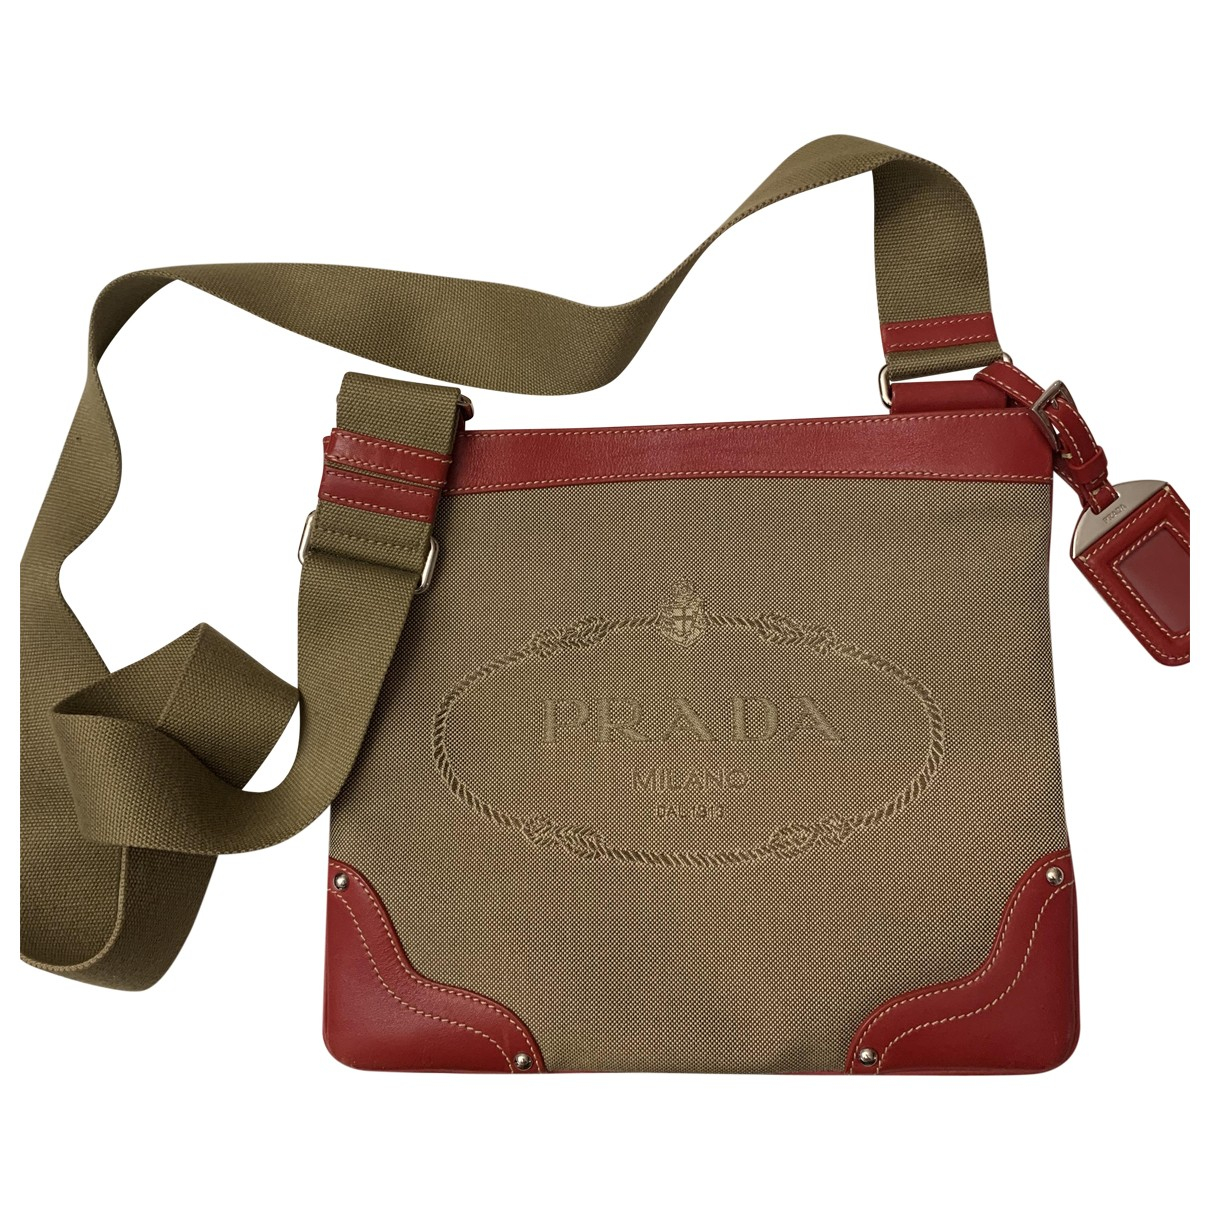 Prada Tessuto  Beige Cloth Clutch bag for Women \N